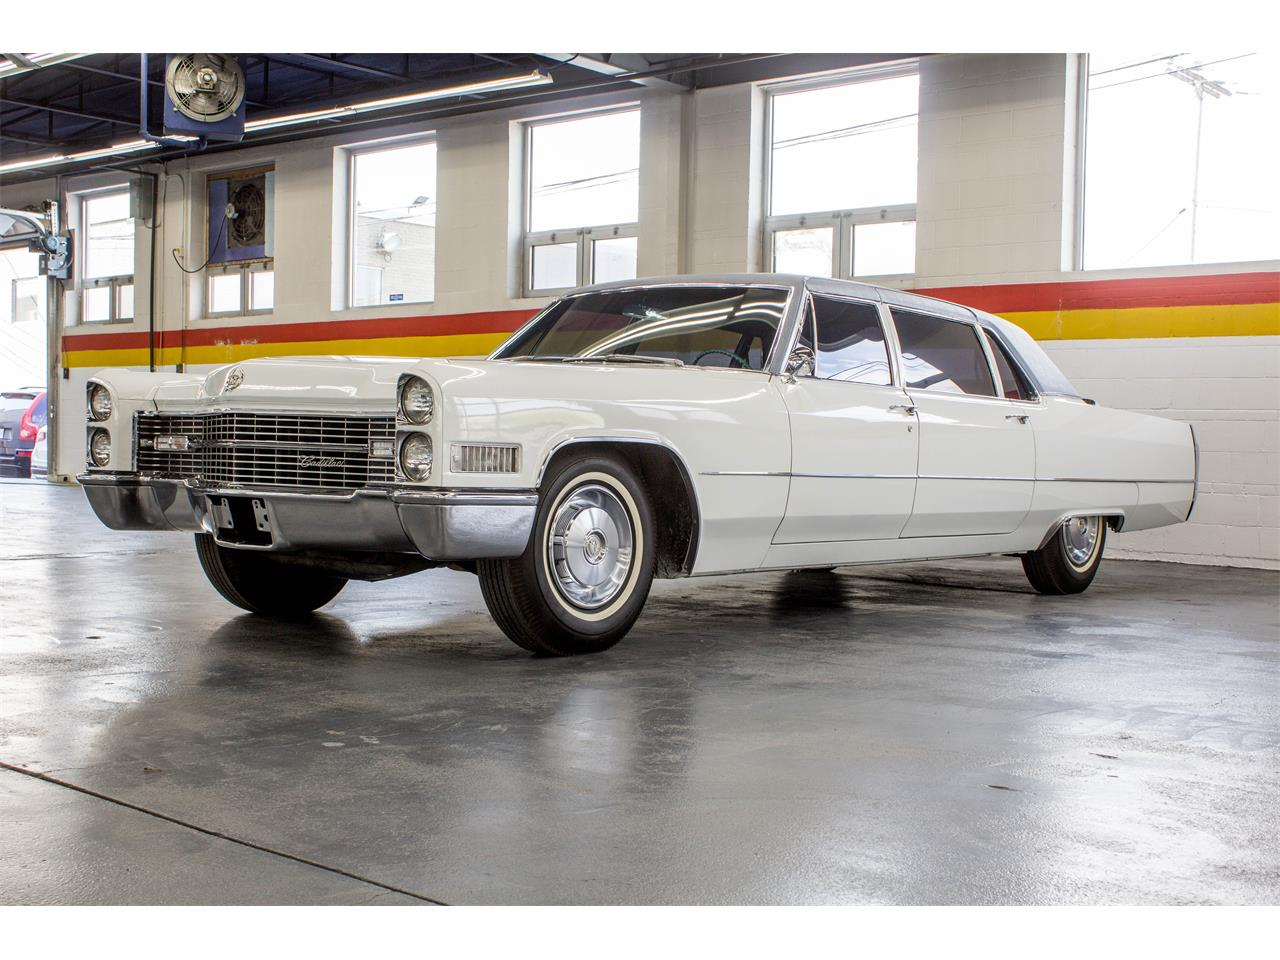 Large Picture of Classic 1966 Cadillac Fleetwood Limousine located in Montreal Quebec - NKXQ